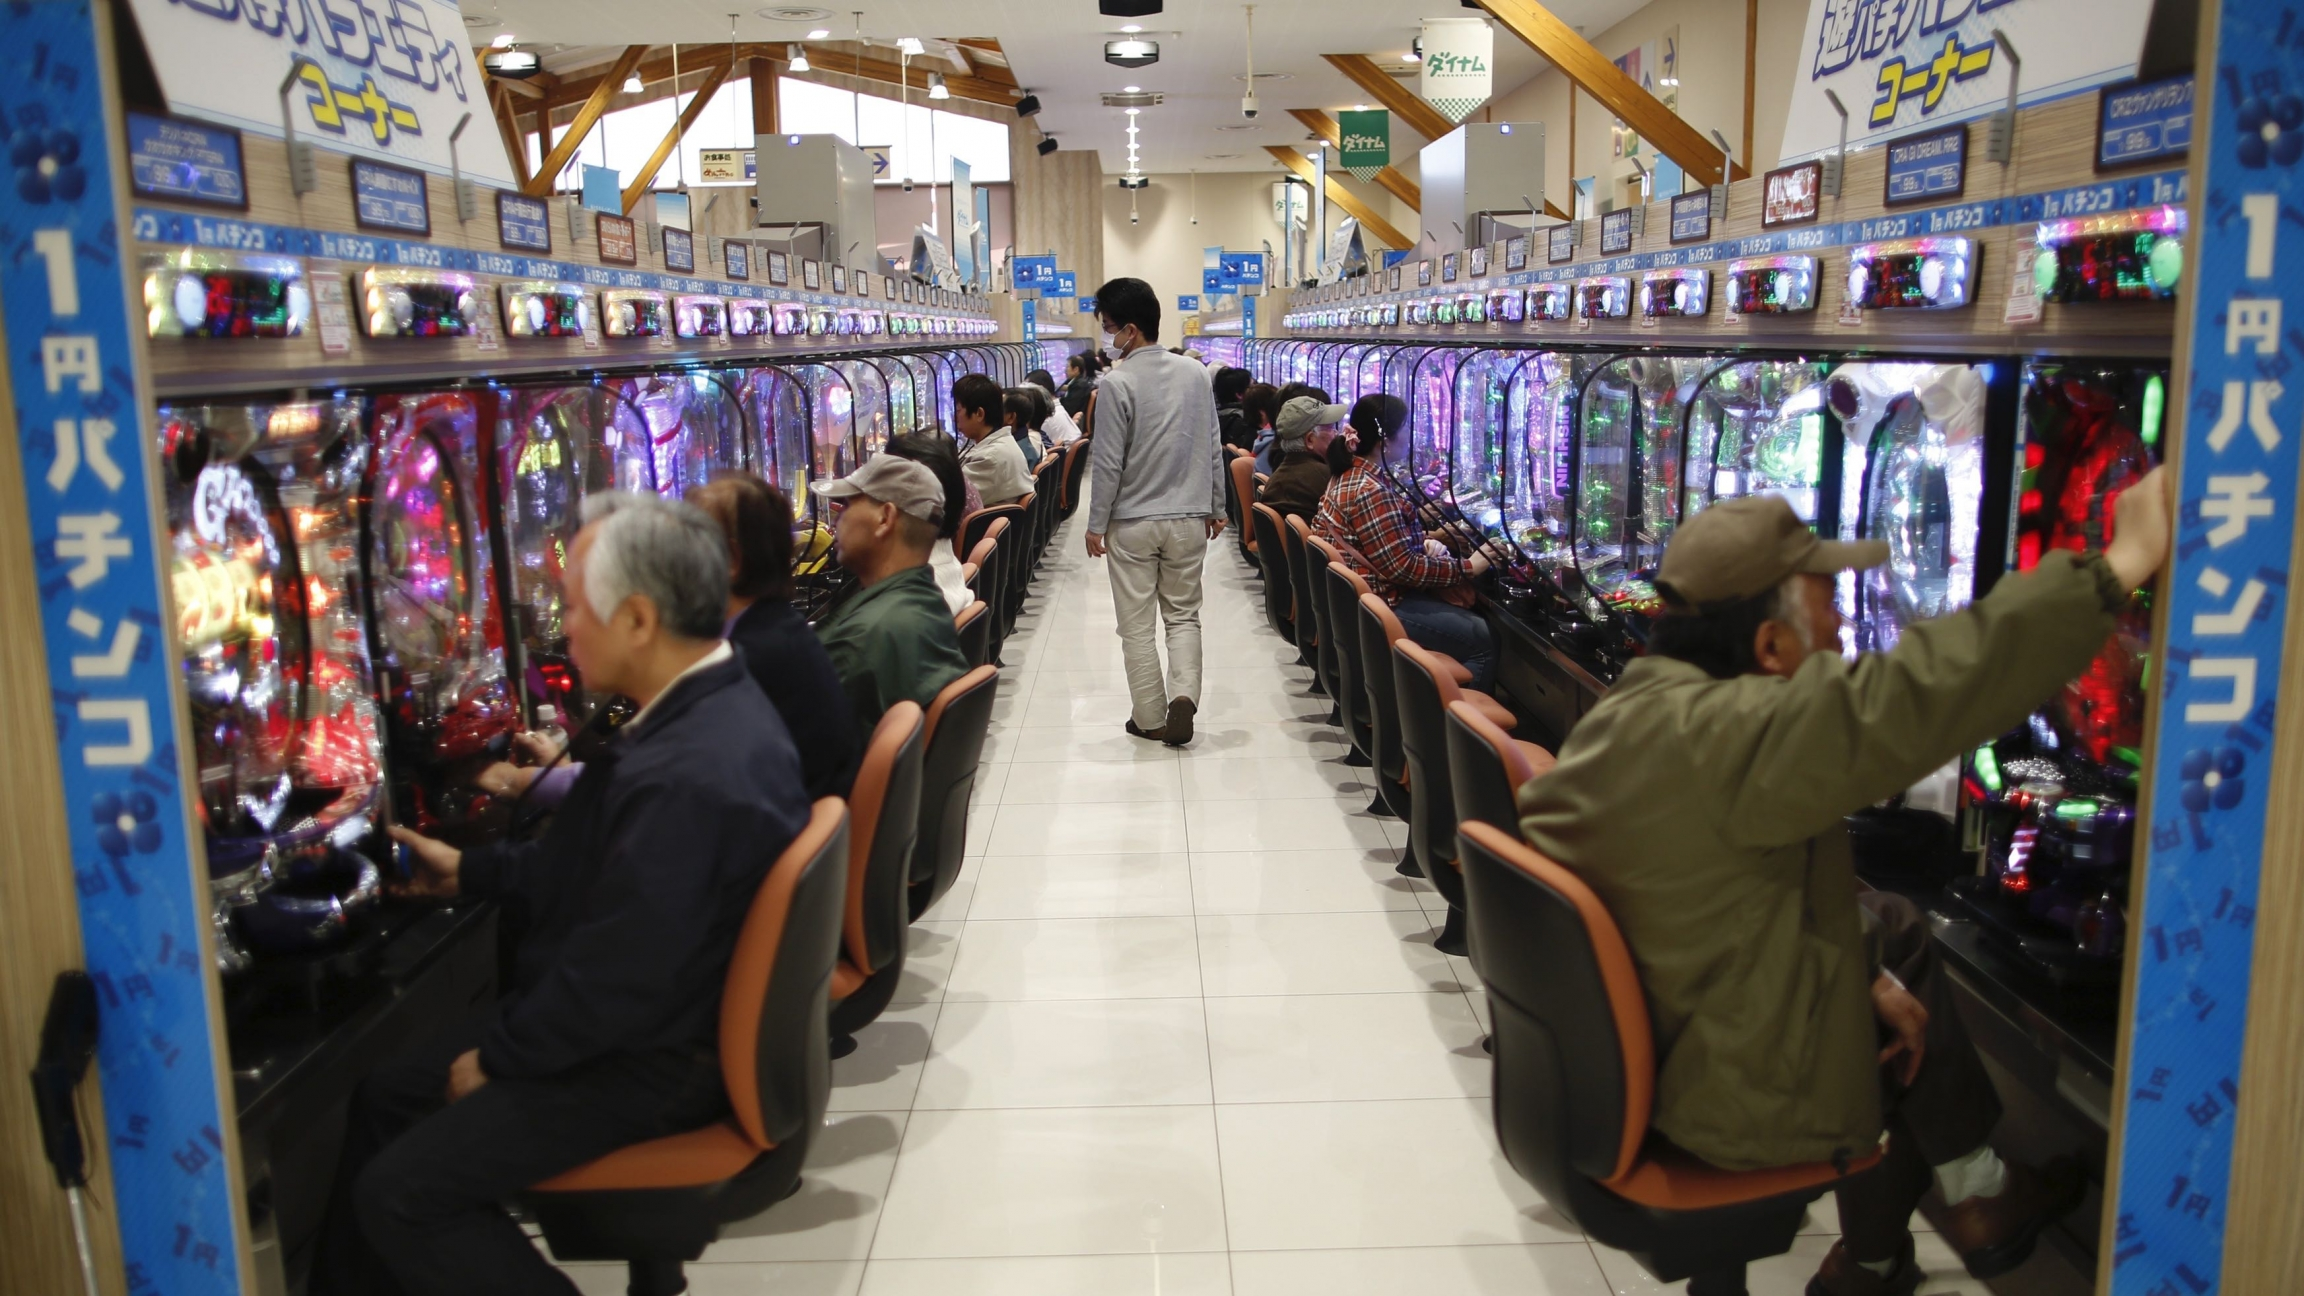 Visitors play Pachinko, a Japanese form of legal gambling, at Dynam Japan Holdings Co.'s Pachinko parlour in Koga, north of Tokyo, April 7, 2014.